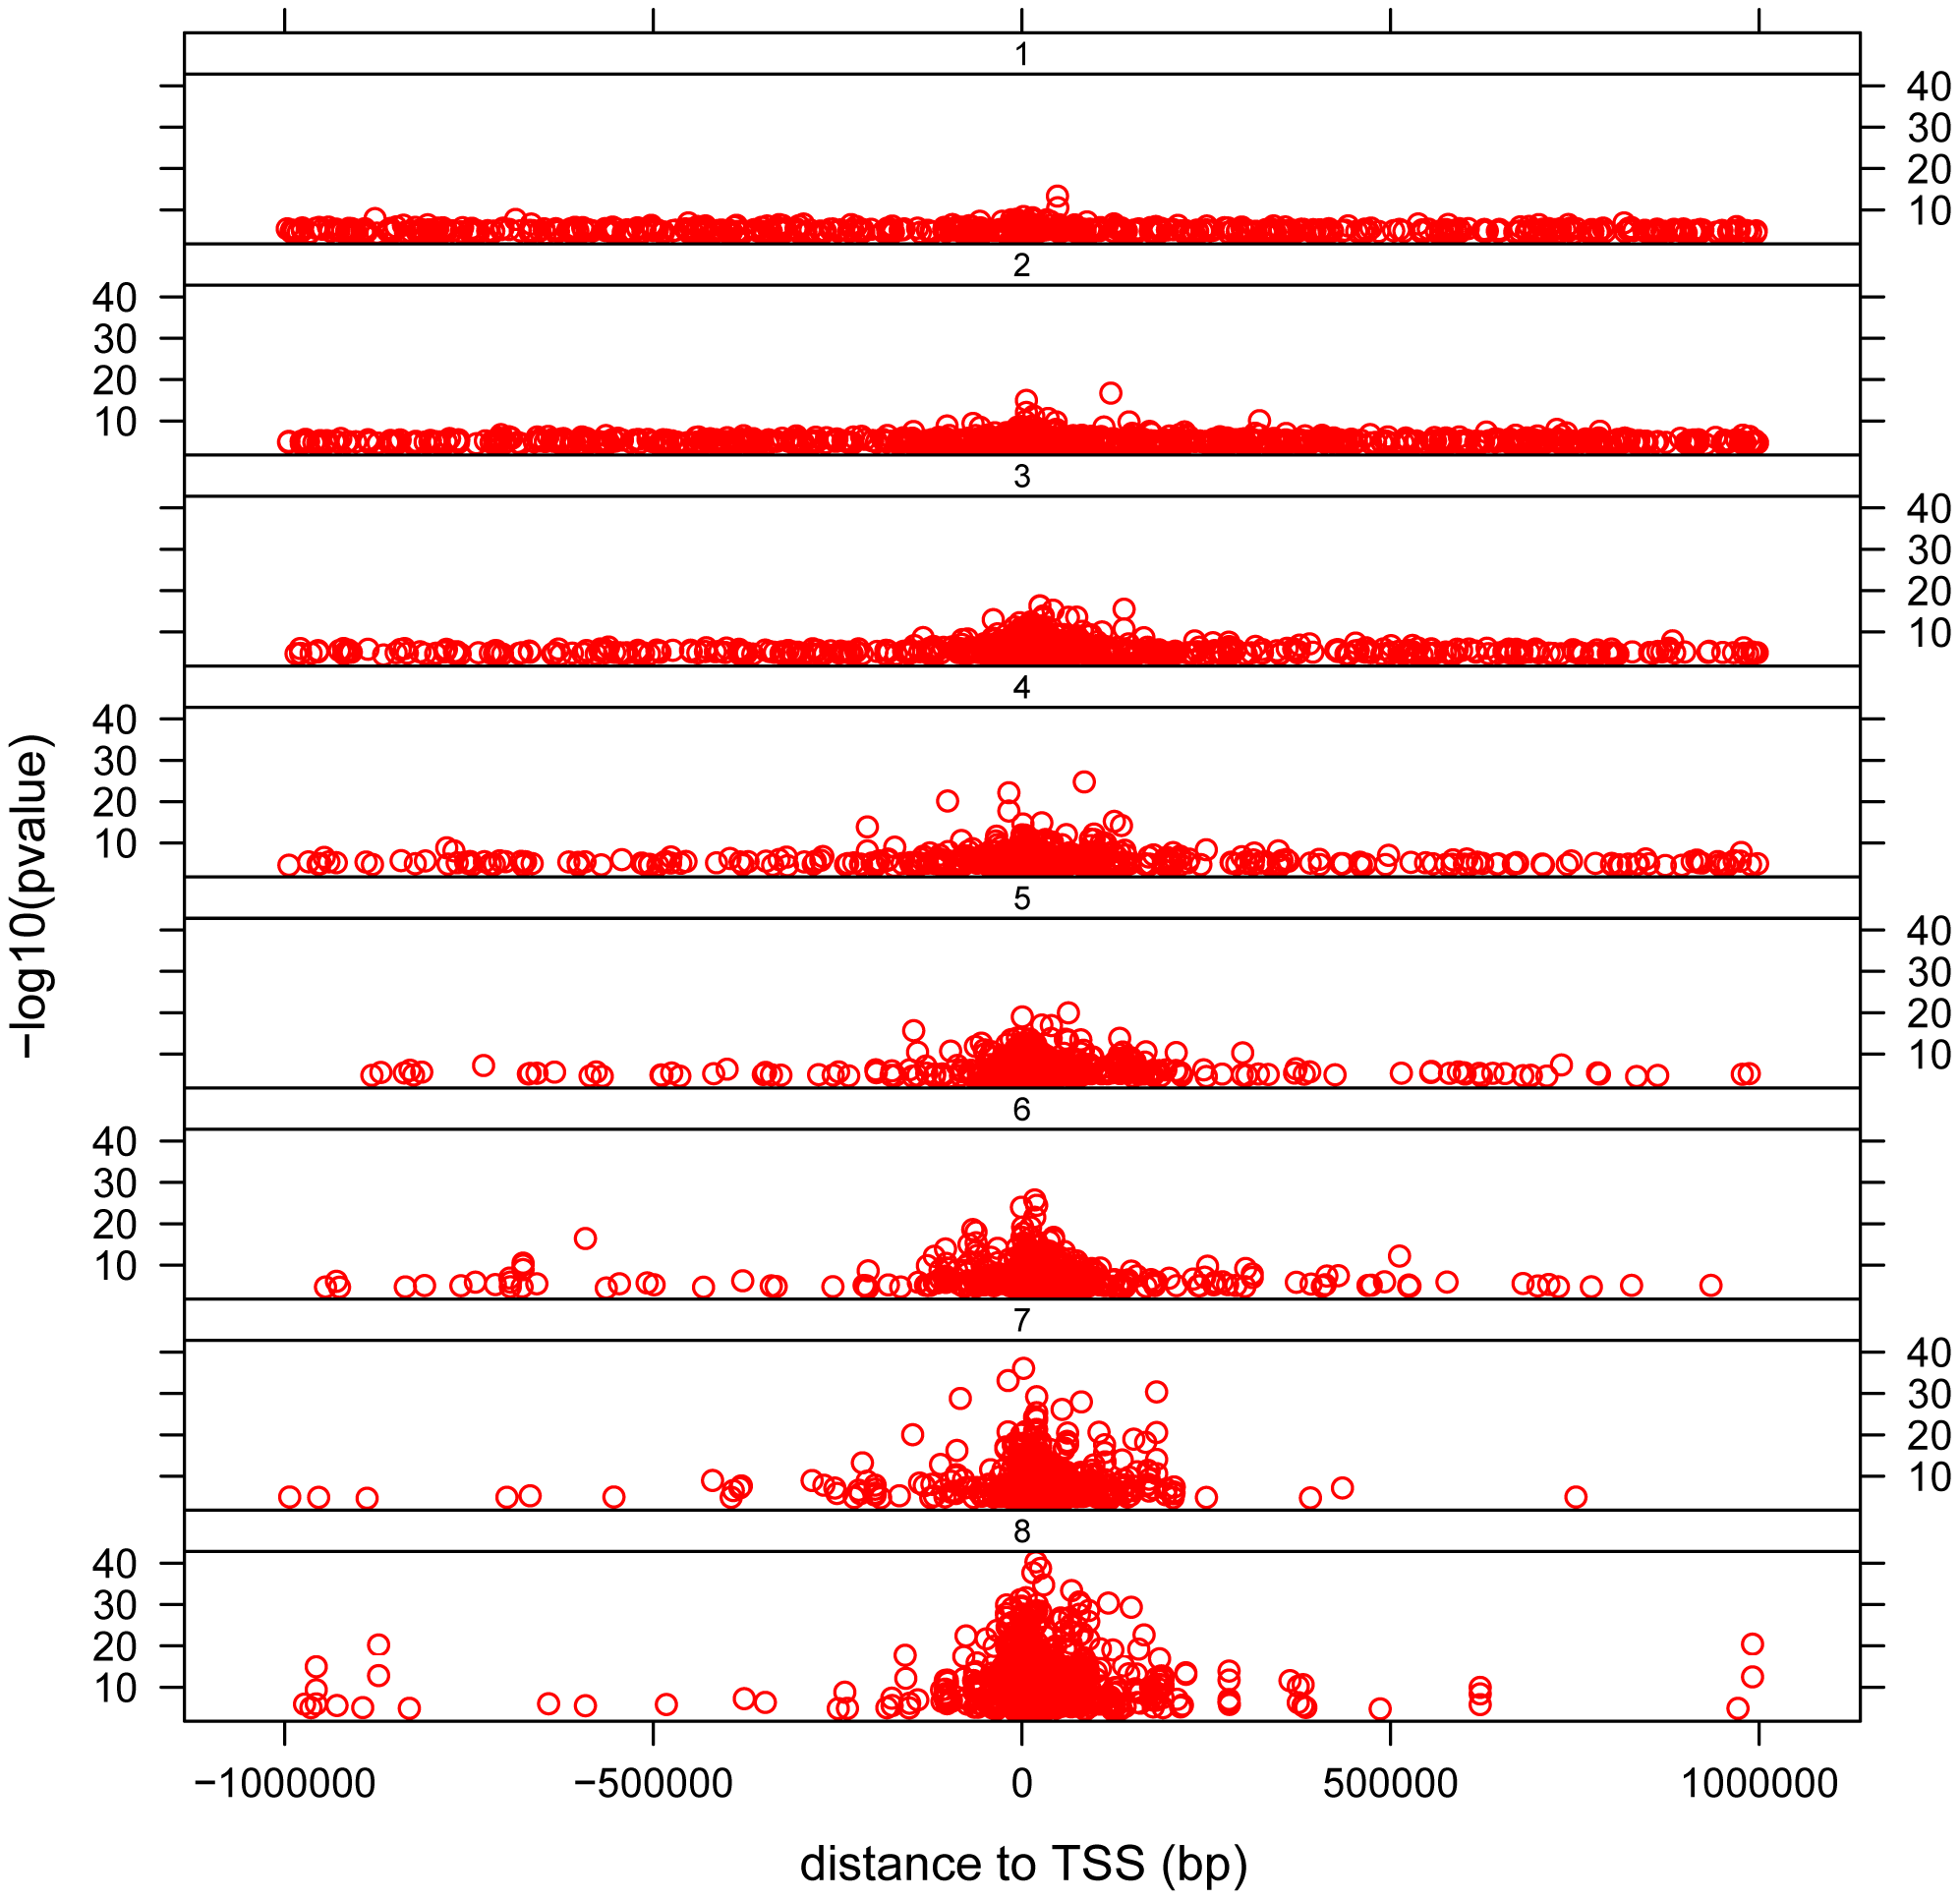 Distribution of <i>cis</i>- associations relative to the transcription start site (TSS) and in relation to population sharing.